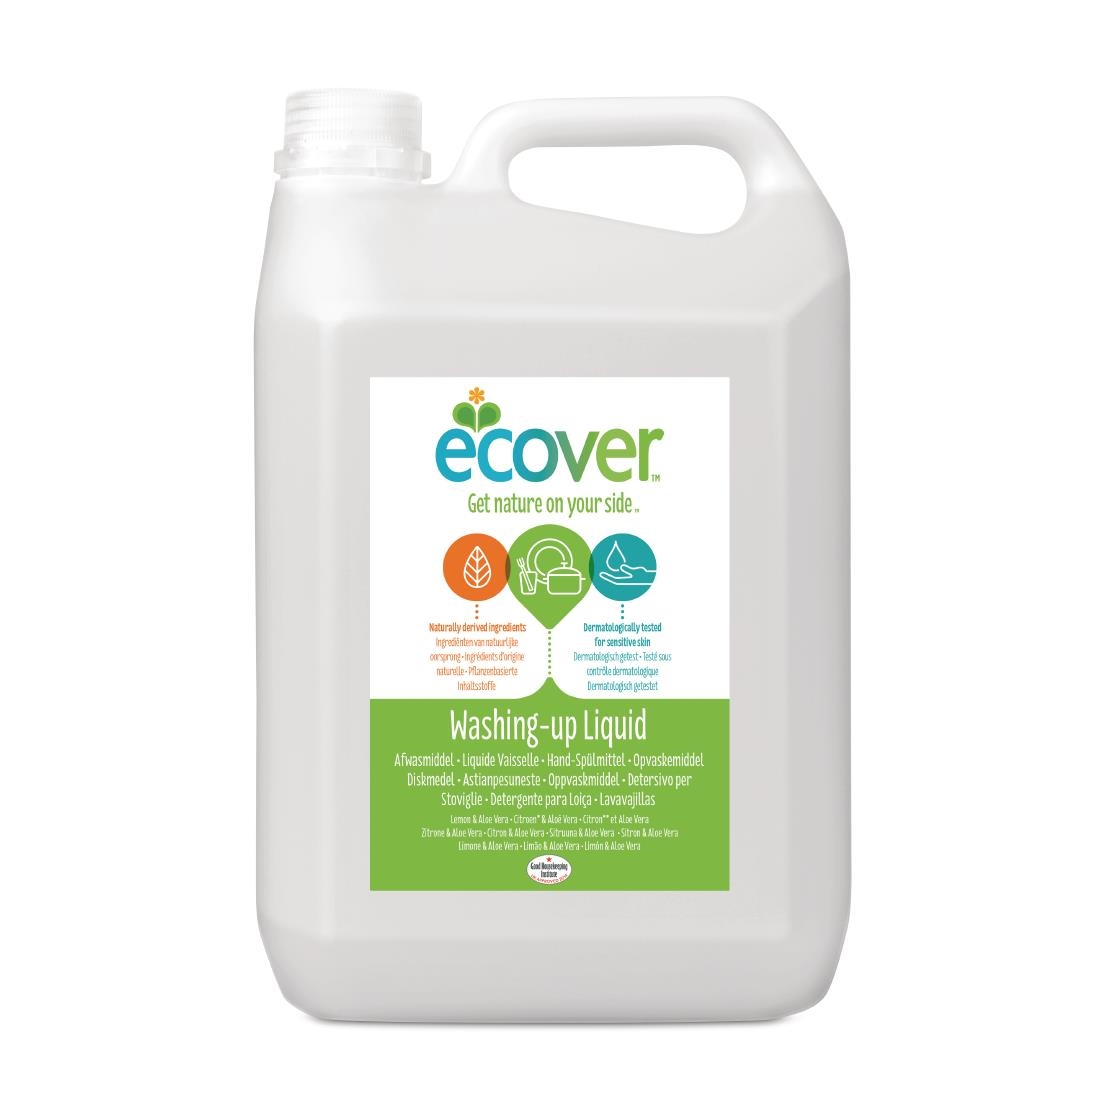 Image of Ecover Lemon and Aloe Vera Washing Up Liquid Concentrate 5Ltr